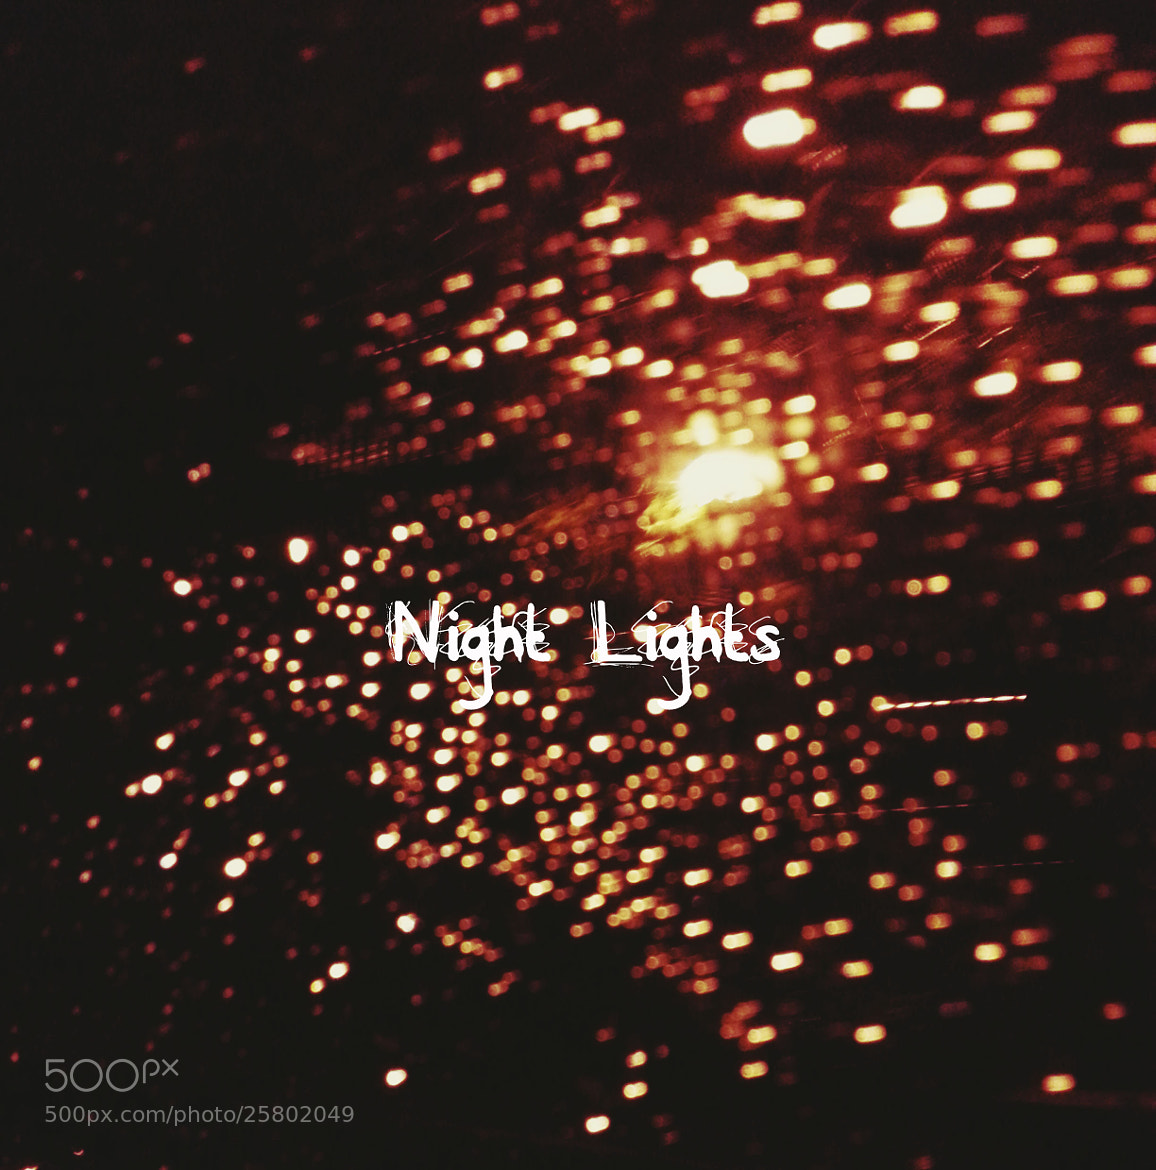 Photograph Night Lights by Marisa Nourbese on 500px